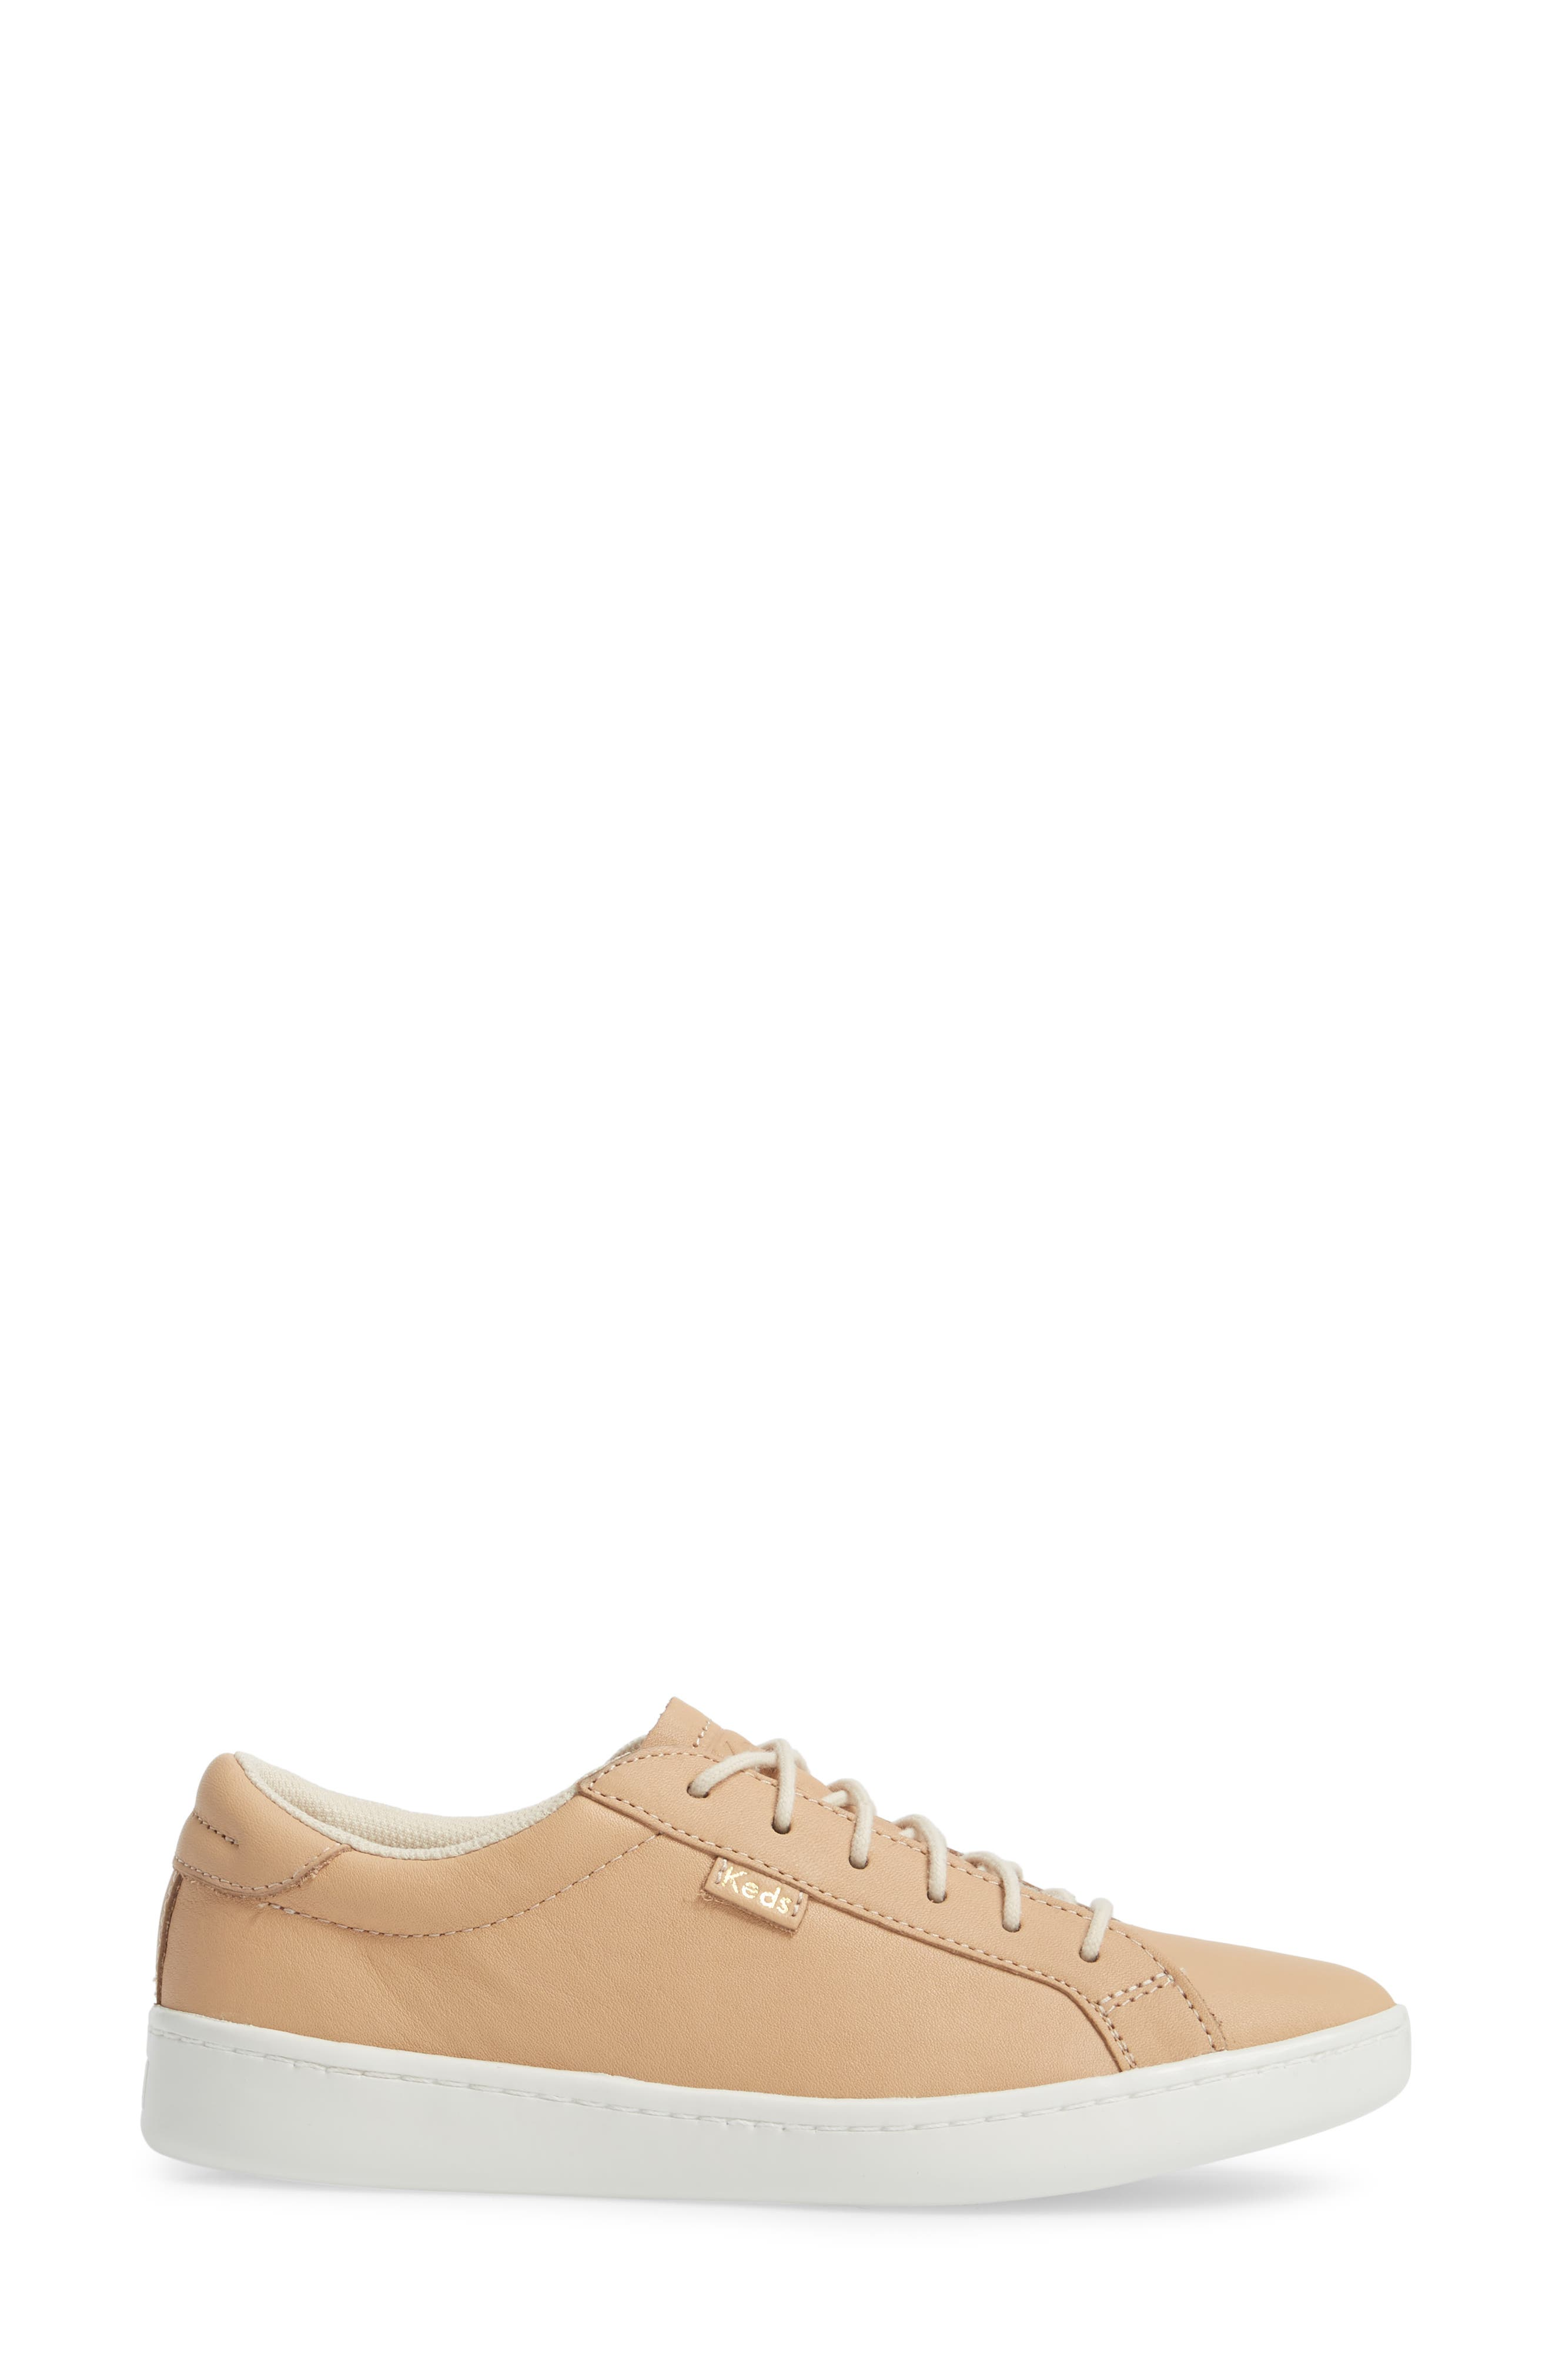 Ace Leather Sneaker,                             Alternate thumbnail 3, color,